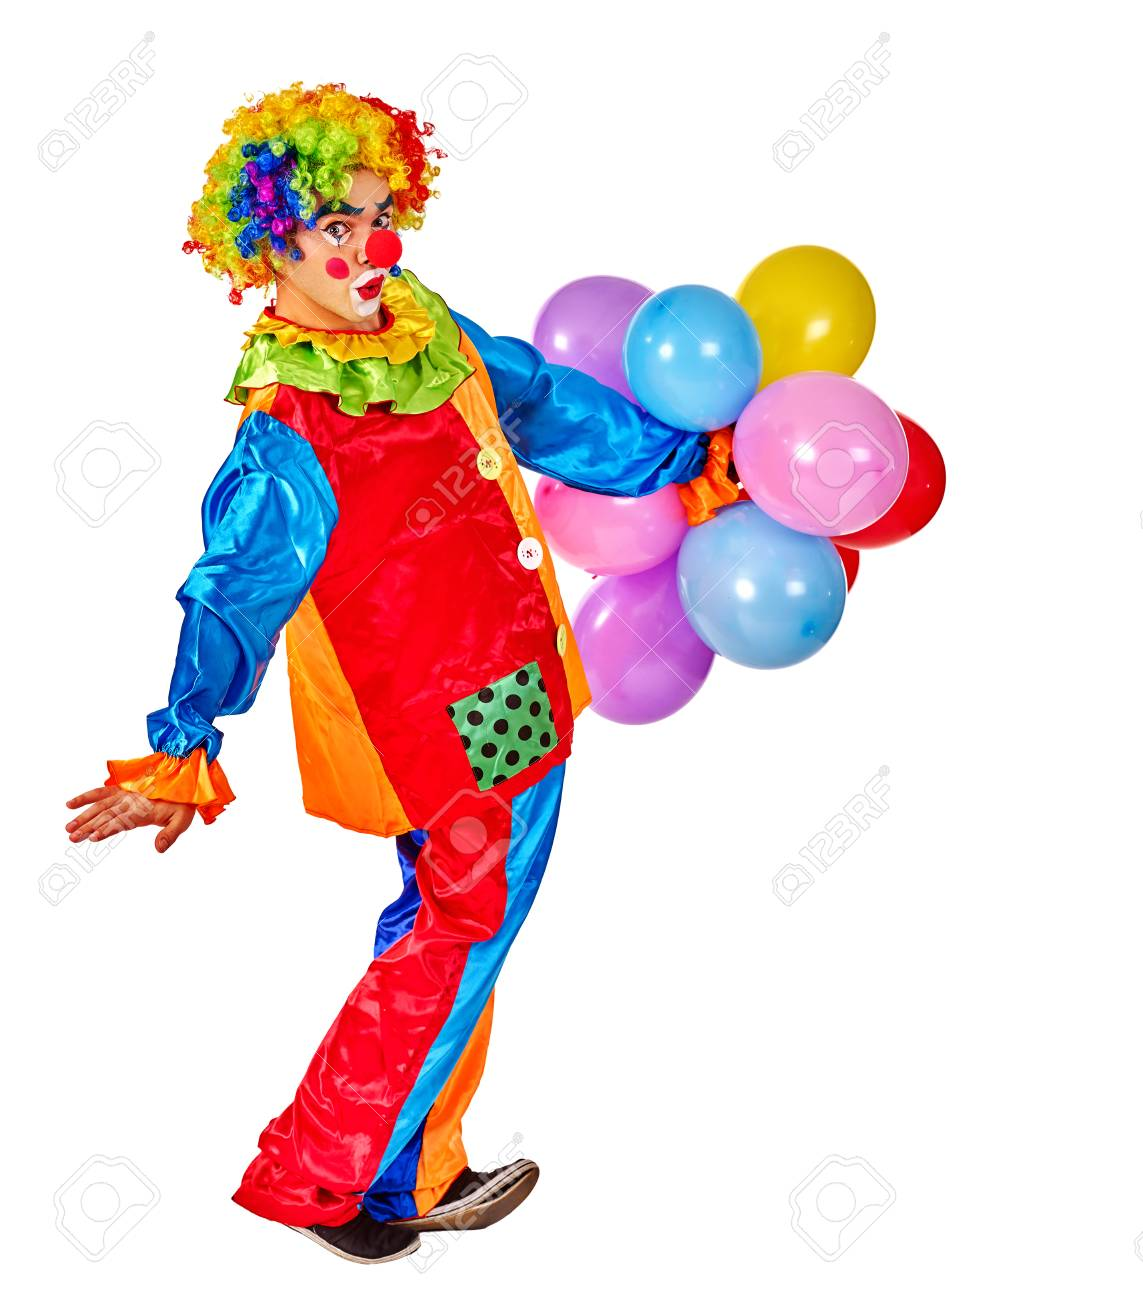 Happy Birthday Clown Man Holding Bunch Of Balloons Isolated Stock Photo